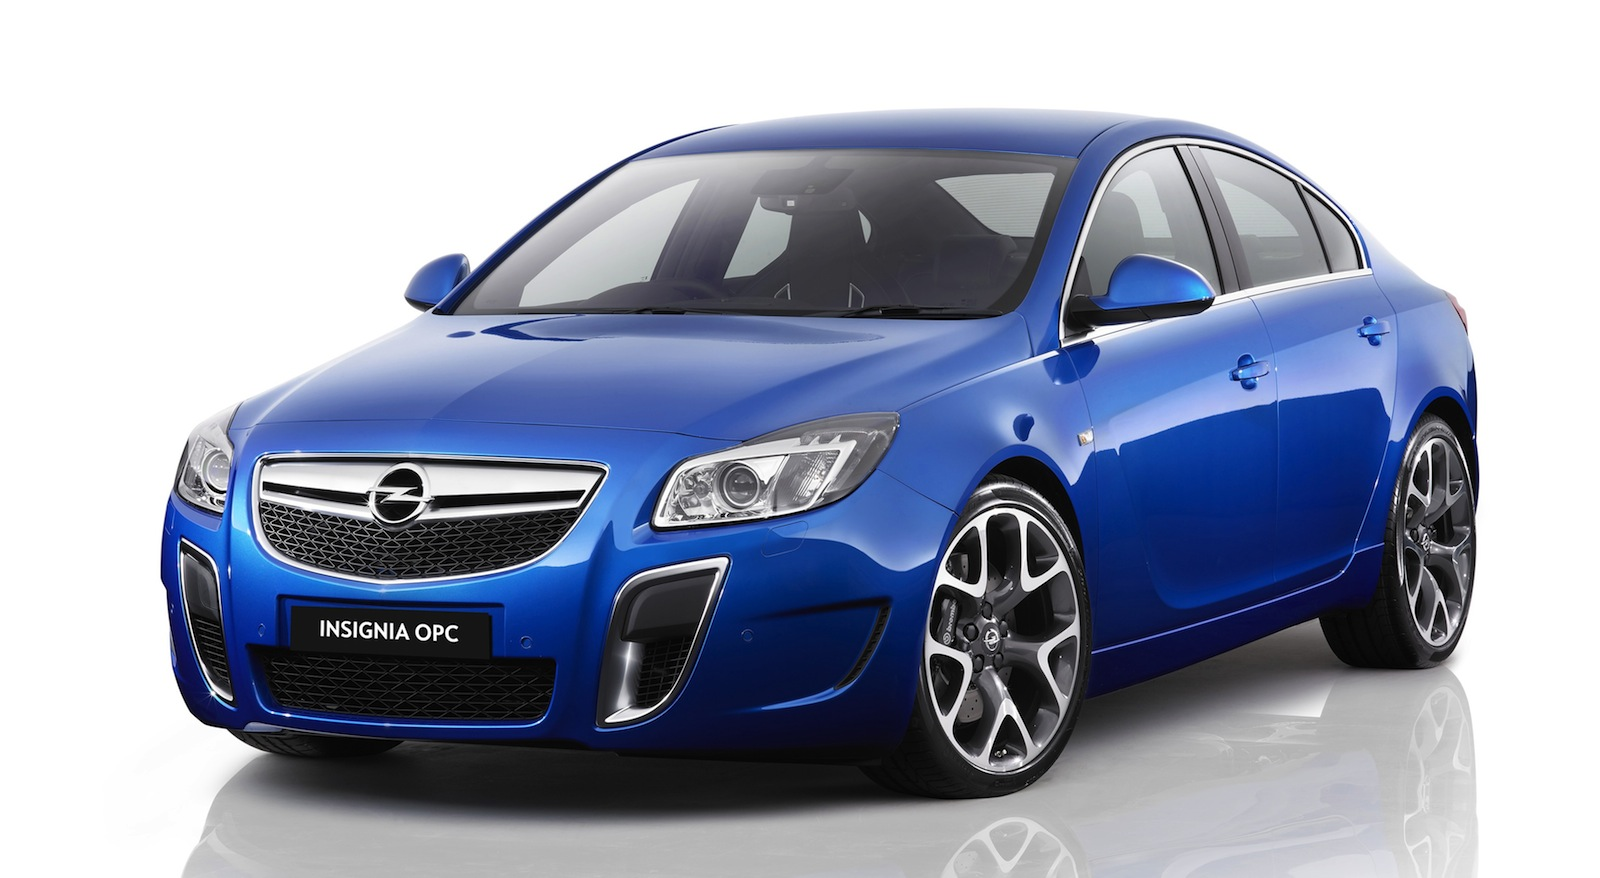 opel insignia corsa opc models confirmed for 2013. Black Bedroom Furniture Sets. Home Design Ideas